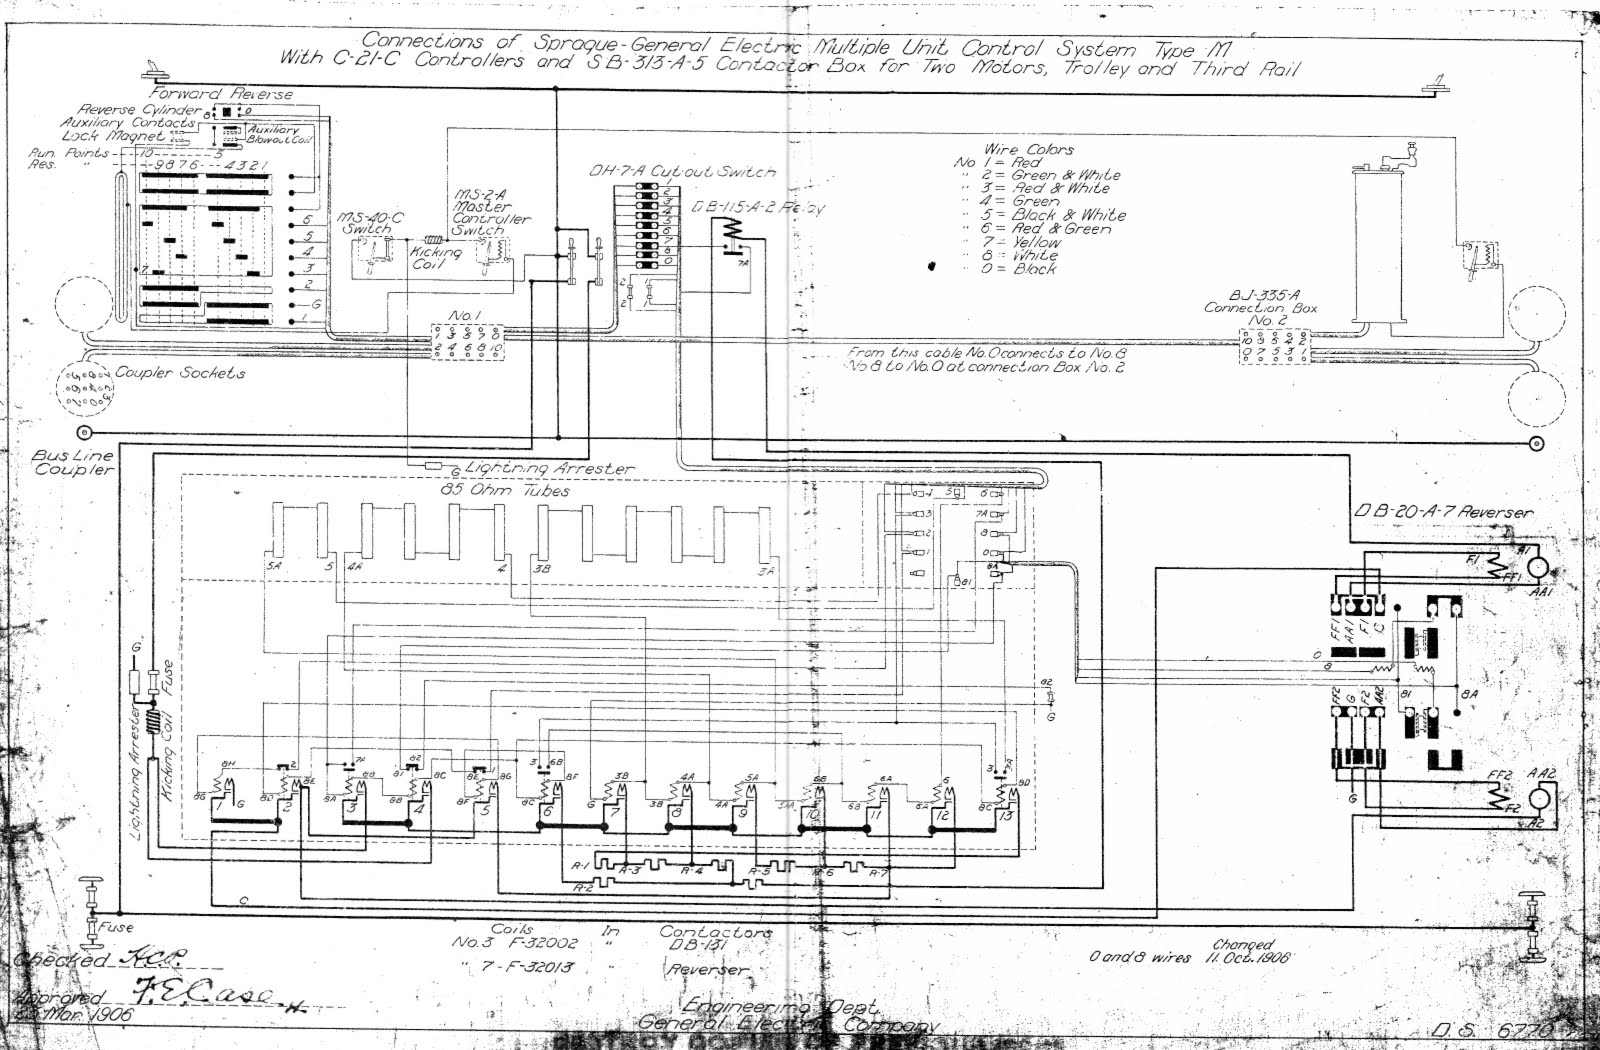 353359 Swap furthermore 91 240sx Egr Diagram as well 92 Toyota Corolla Radio Wiring Diagram furthermore Ididit Steering Column Wiring Diagram together with 92 Ford Mustang Timing. on 92 integra engine diagram